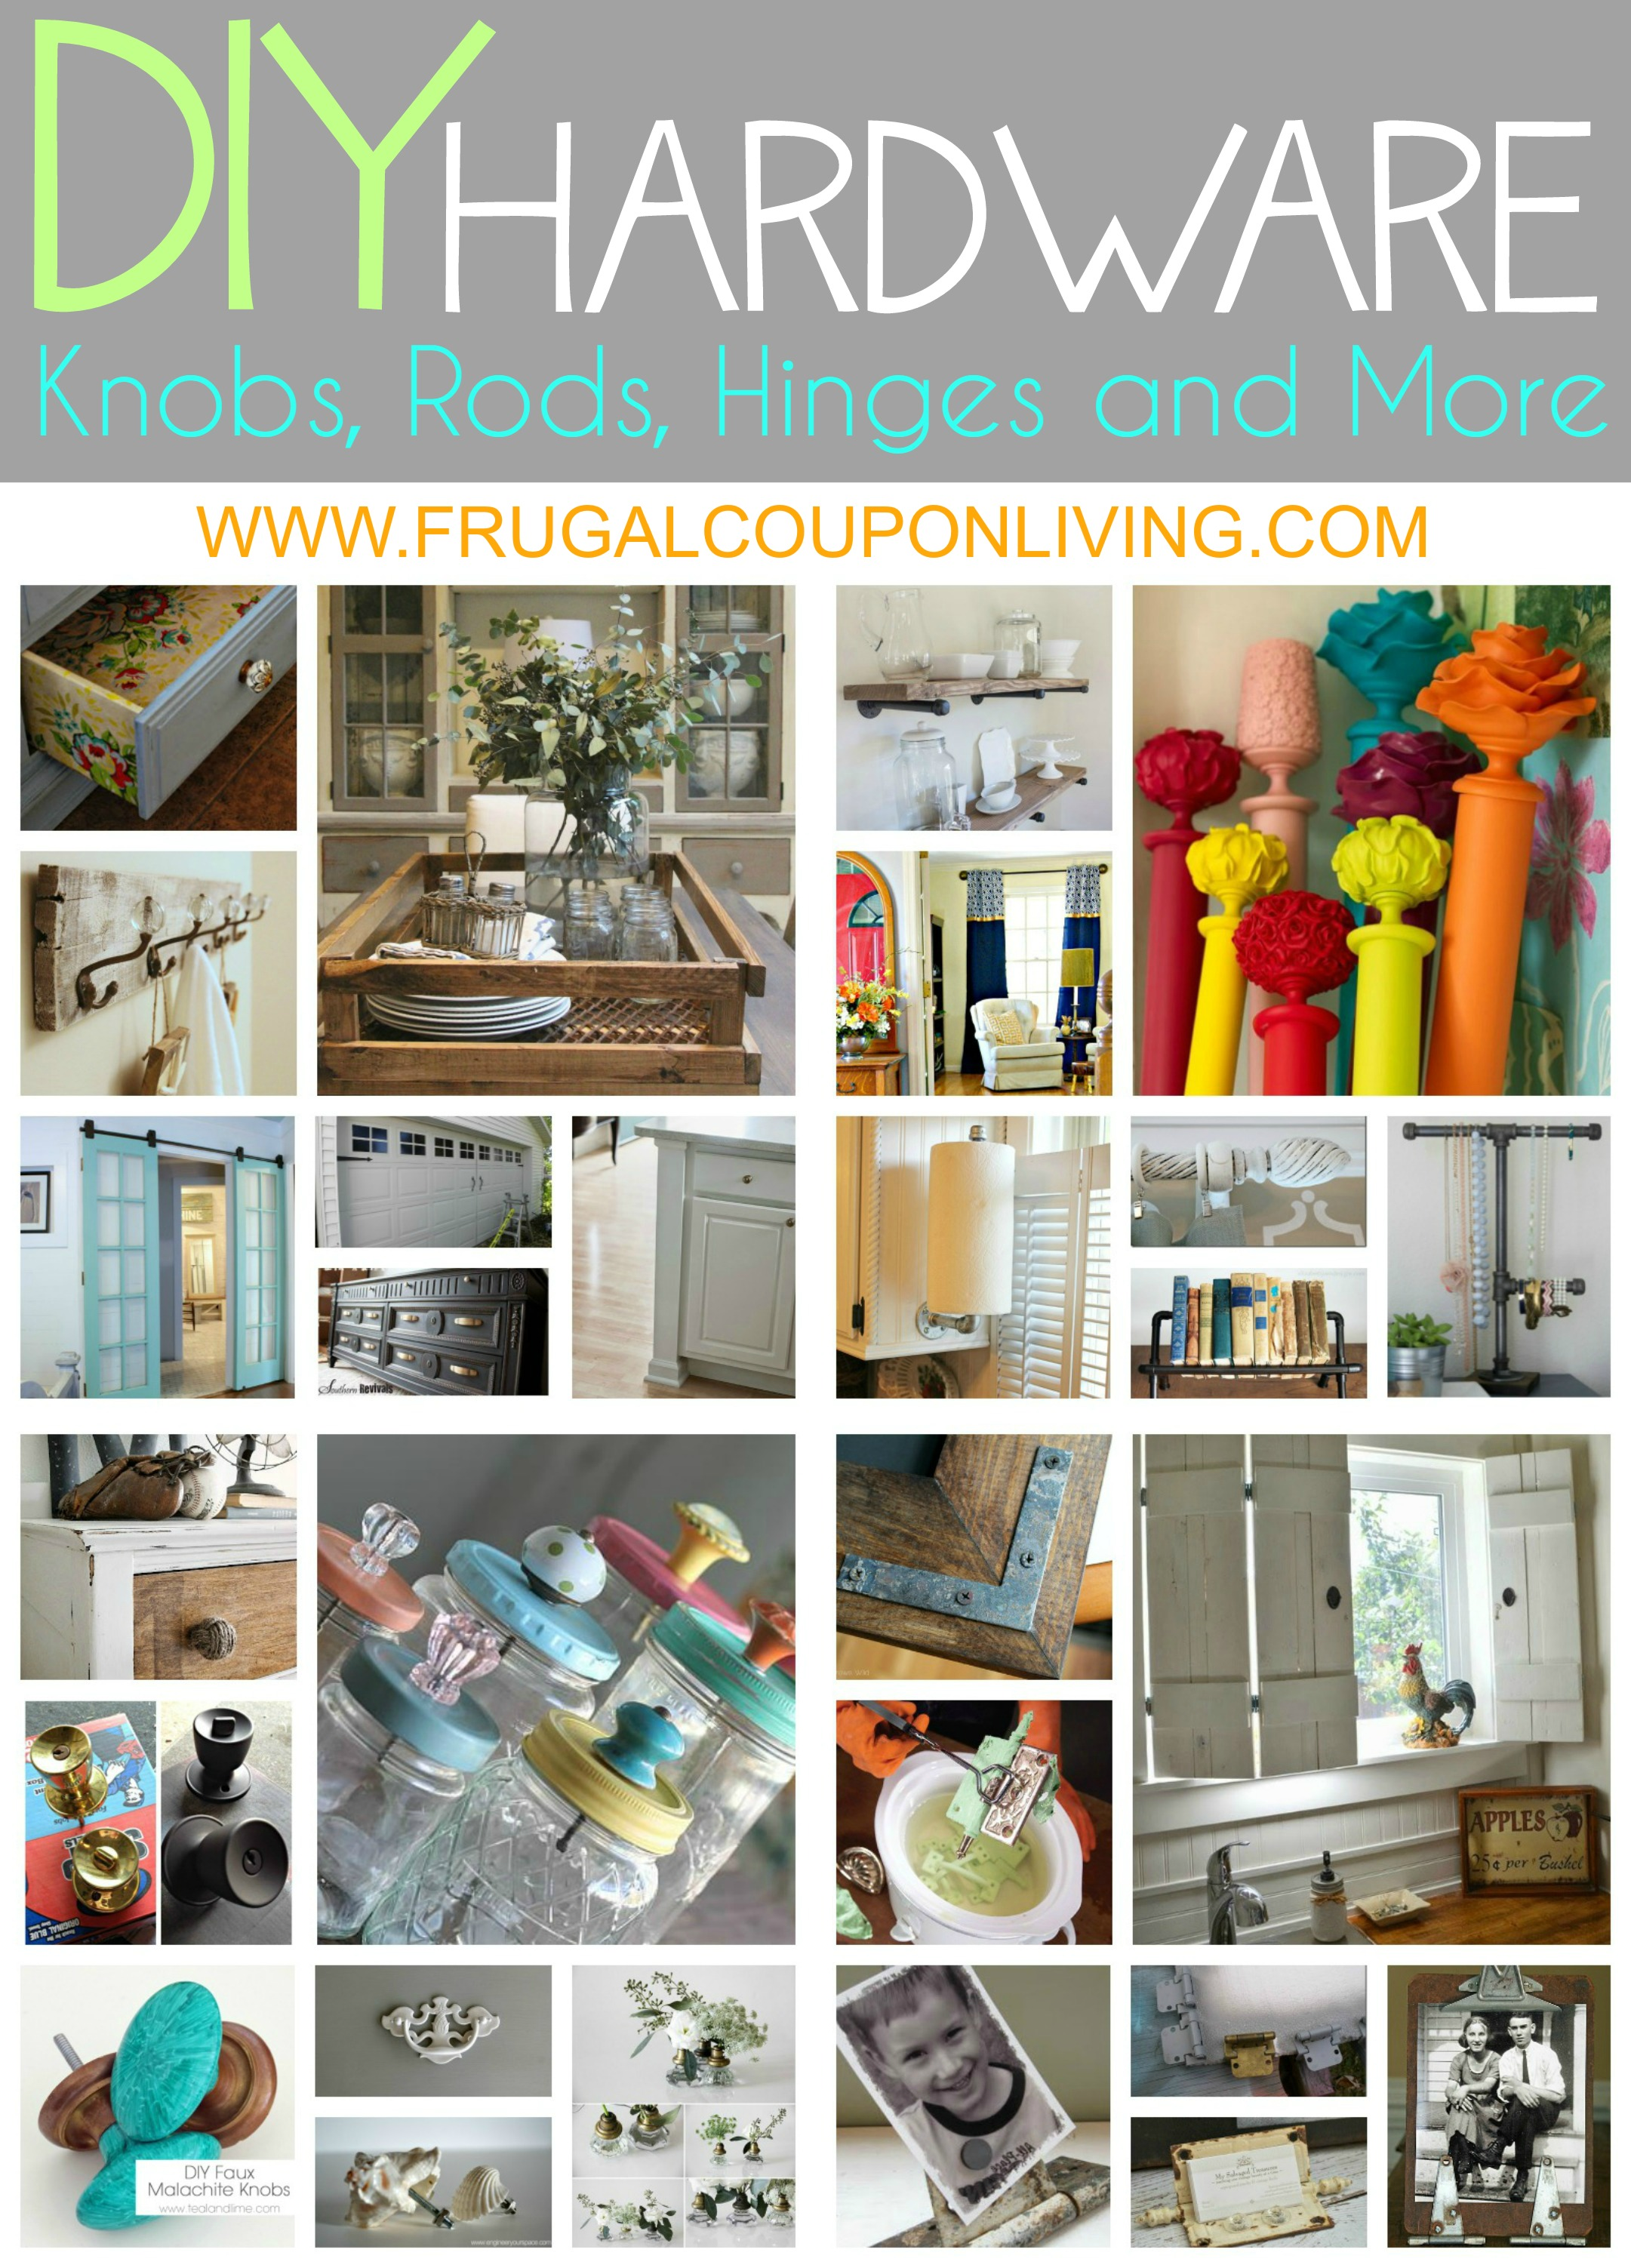 diy-hardware-round-up-Collage-frugal-coupon-living